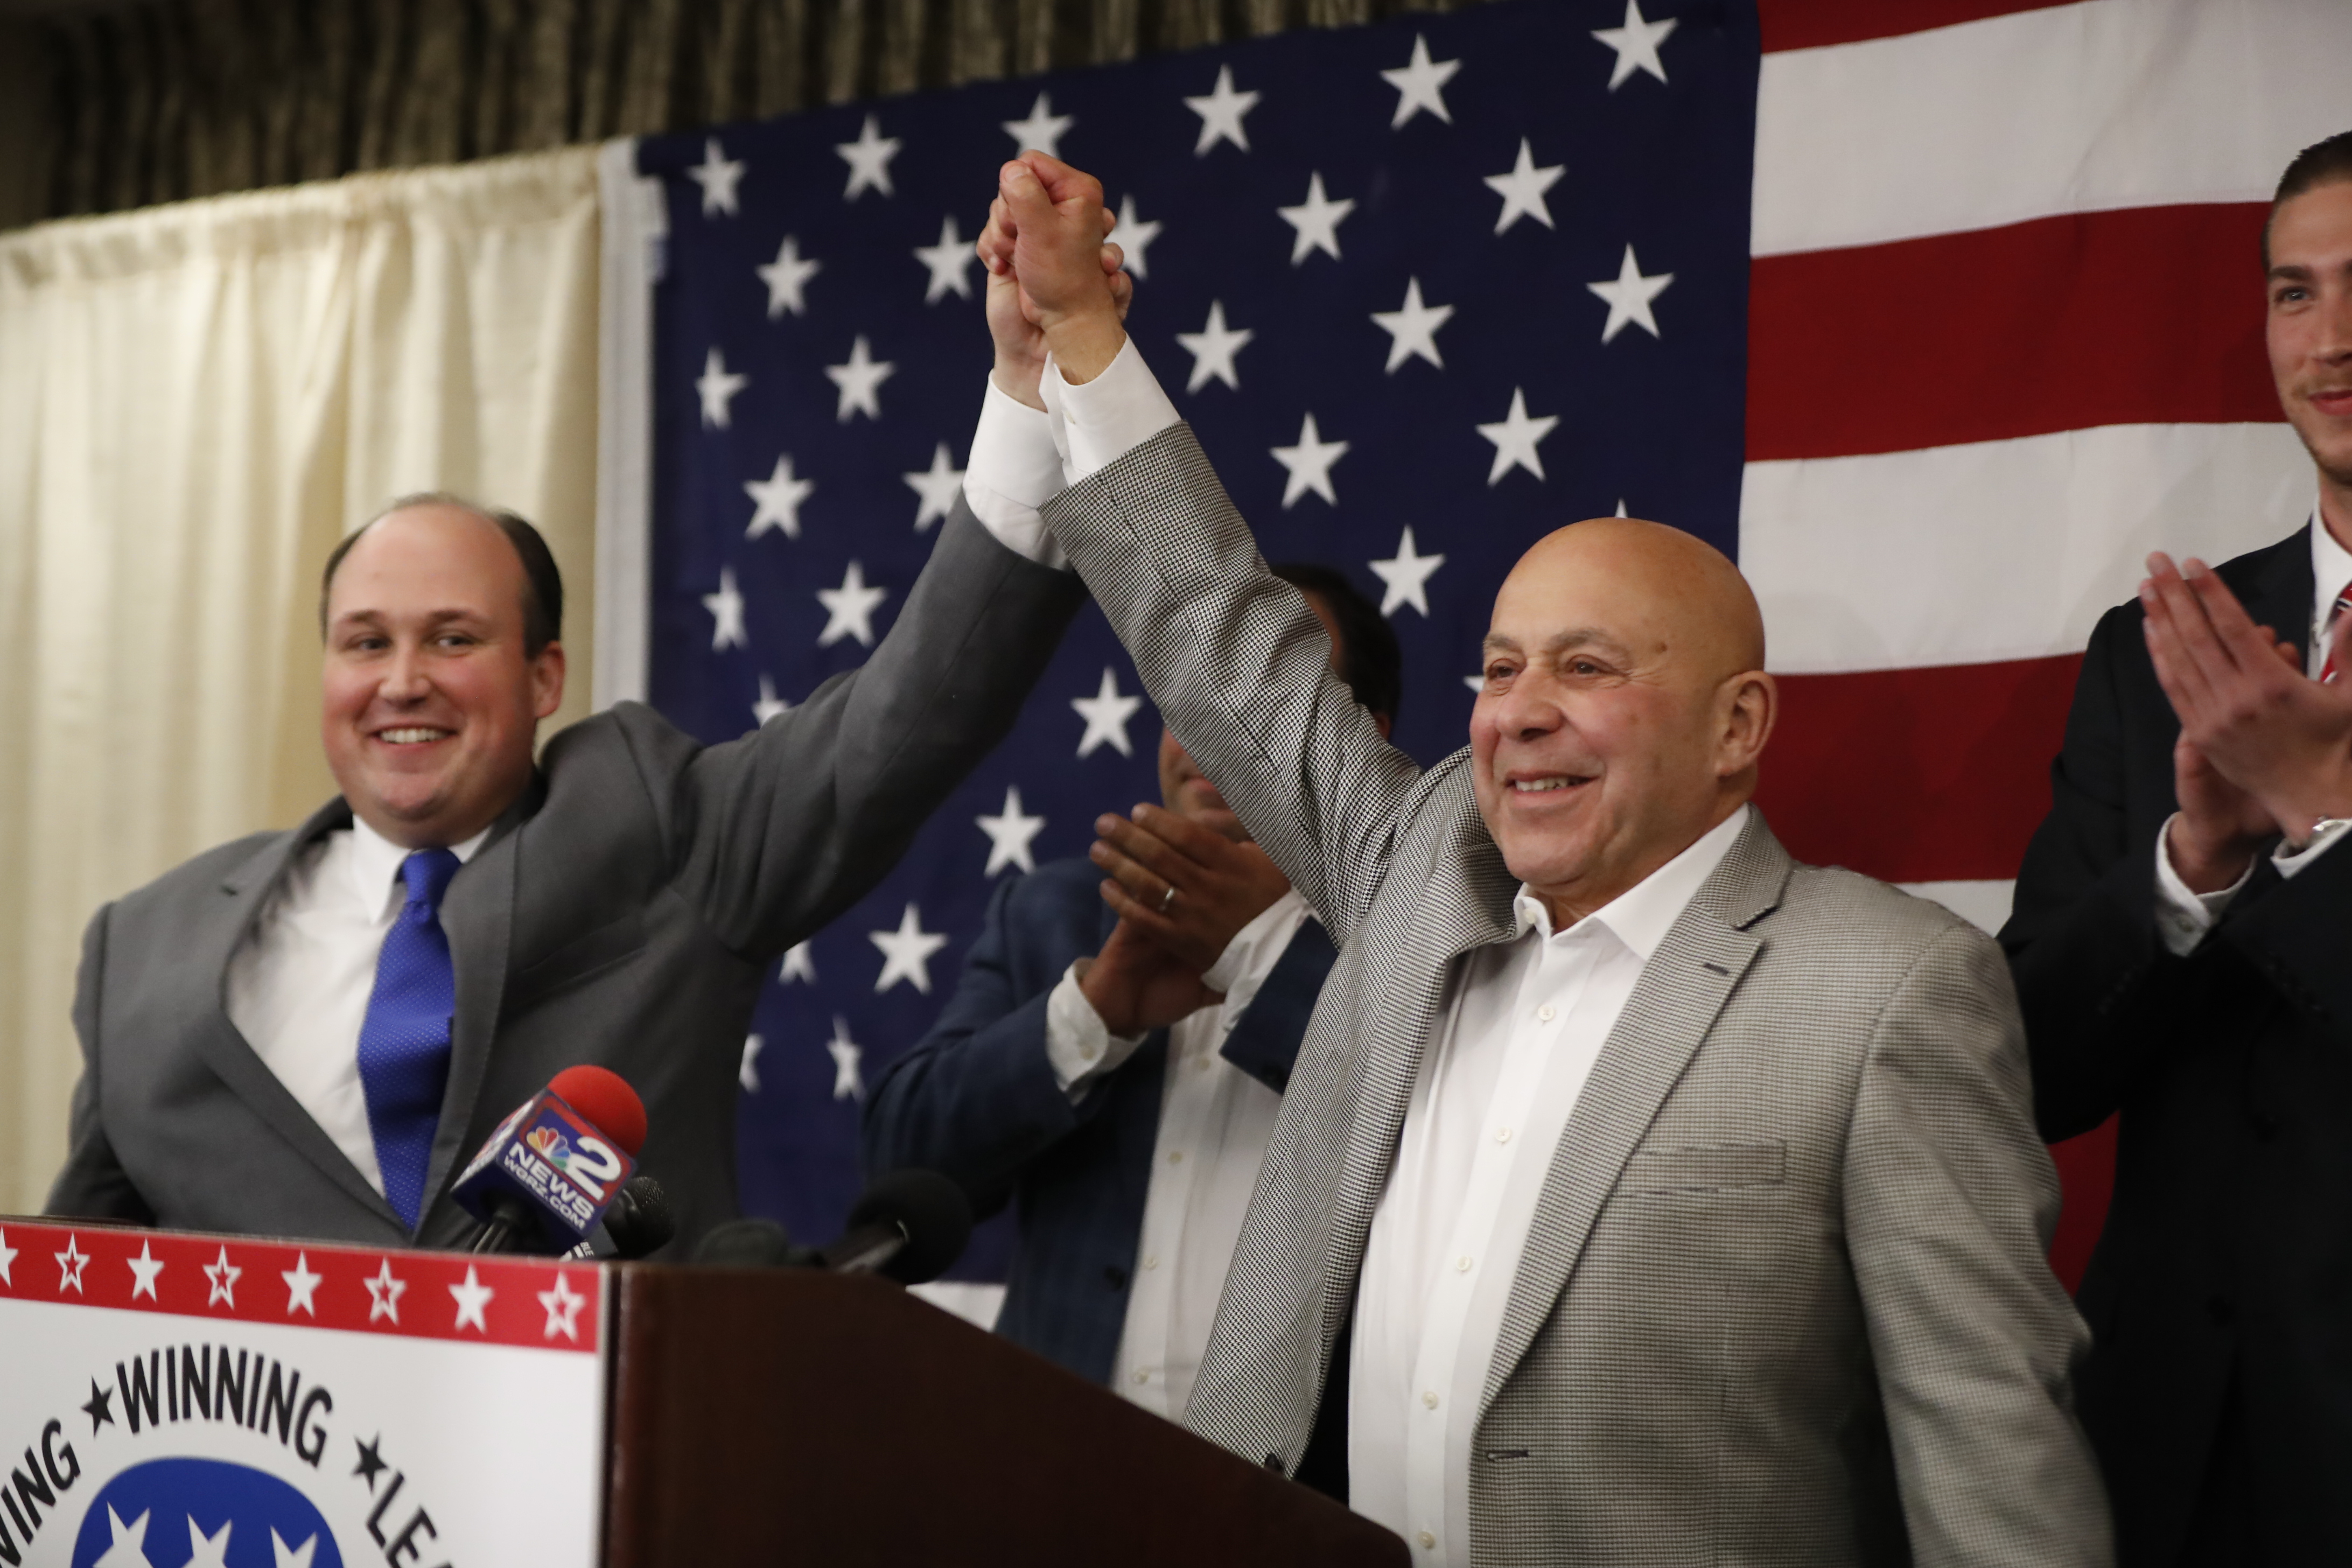 Angelo J. Morinello, on right, speaks after being elected to the State Assembly at Republican headquarters at the Avant Building on Tuesday, Nov. 8, 2016. (Harry Scull Jr./Buffalo News)